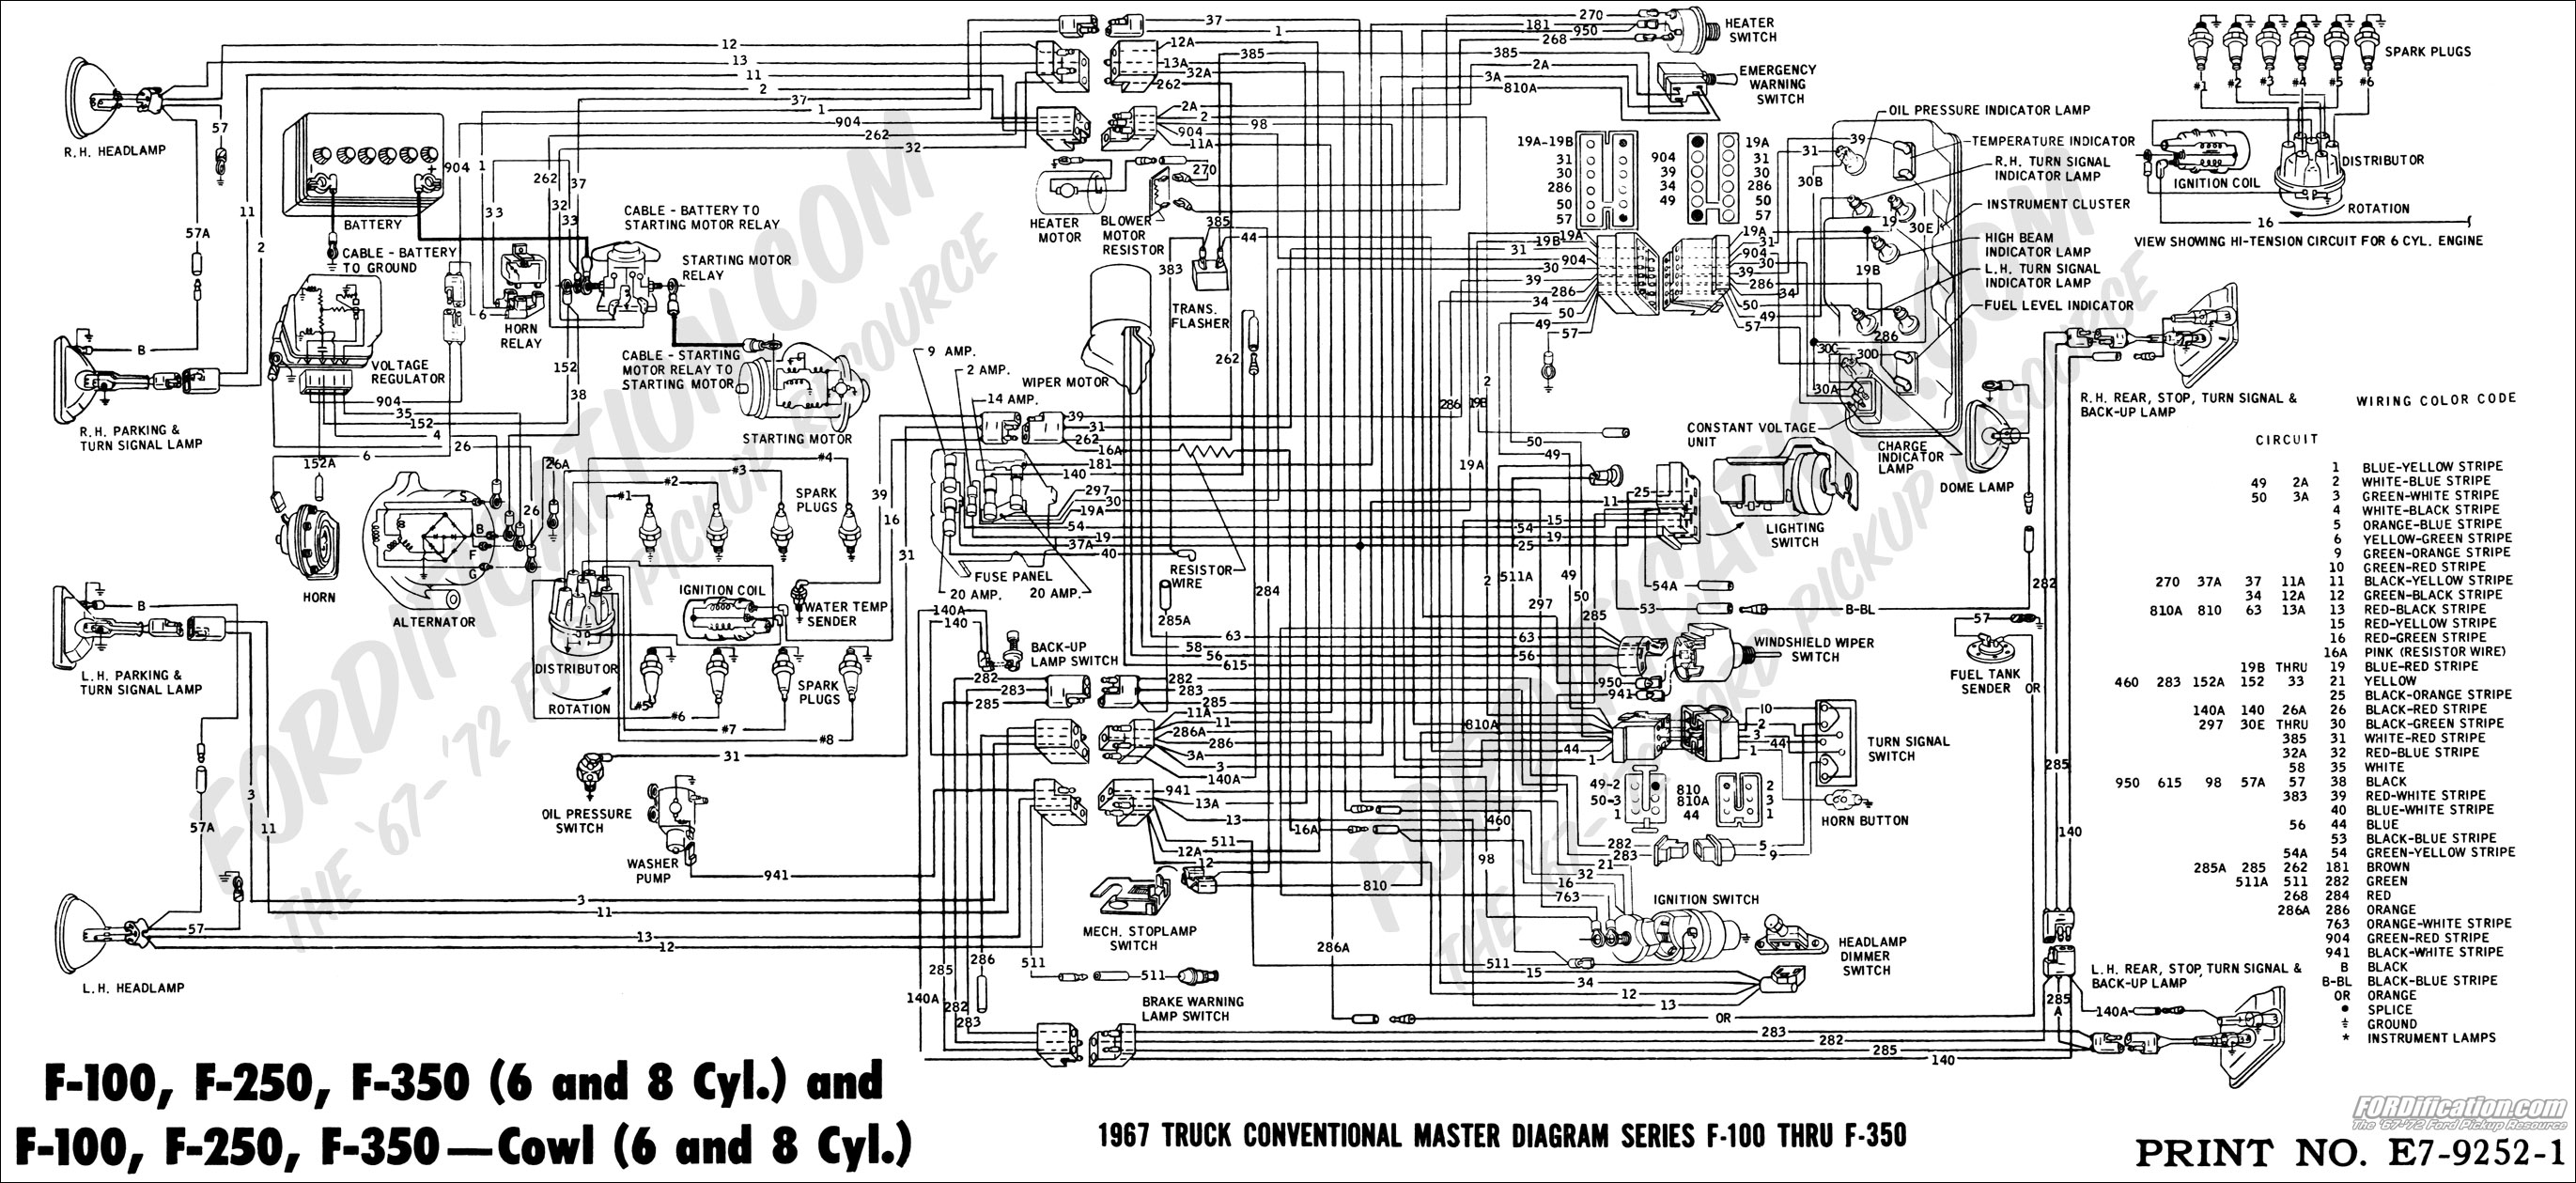 67masterdiagram ford truck technical drawings and schematics section h wiring Wiring Diagram for 1965 Chevy Truck at honlapkeszites.co